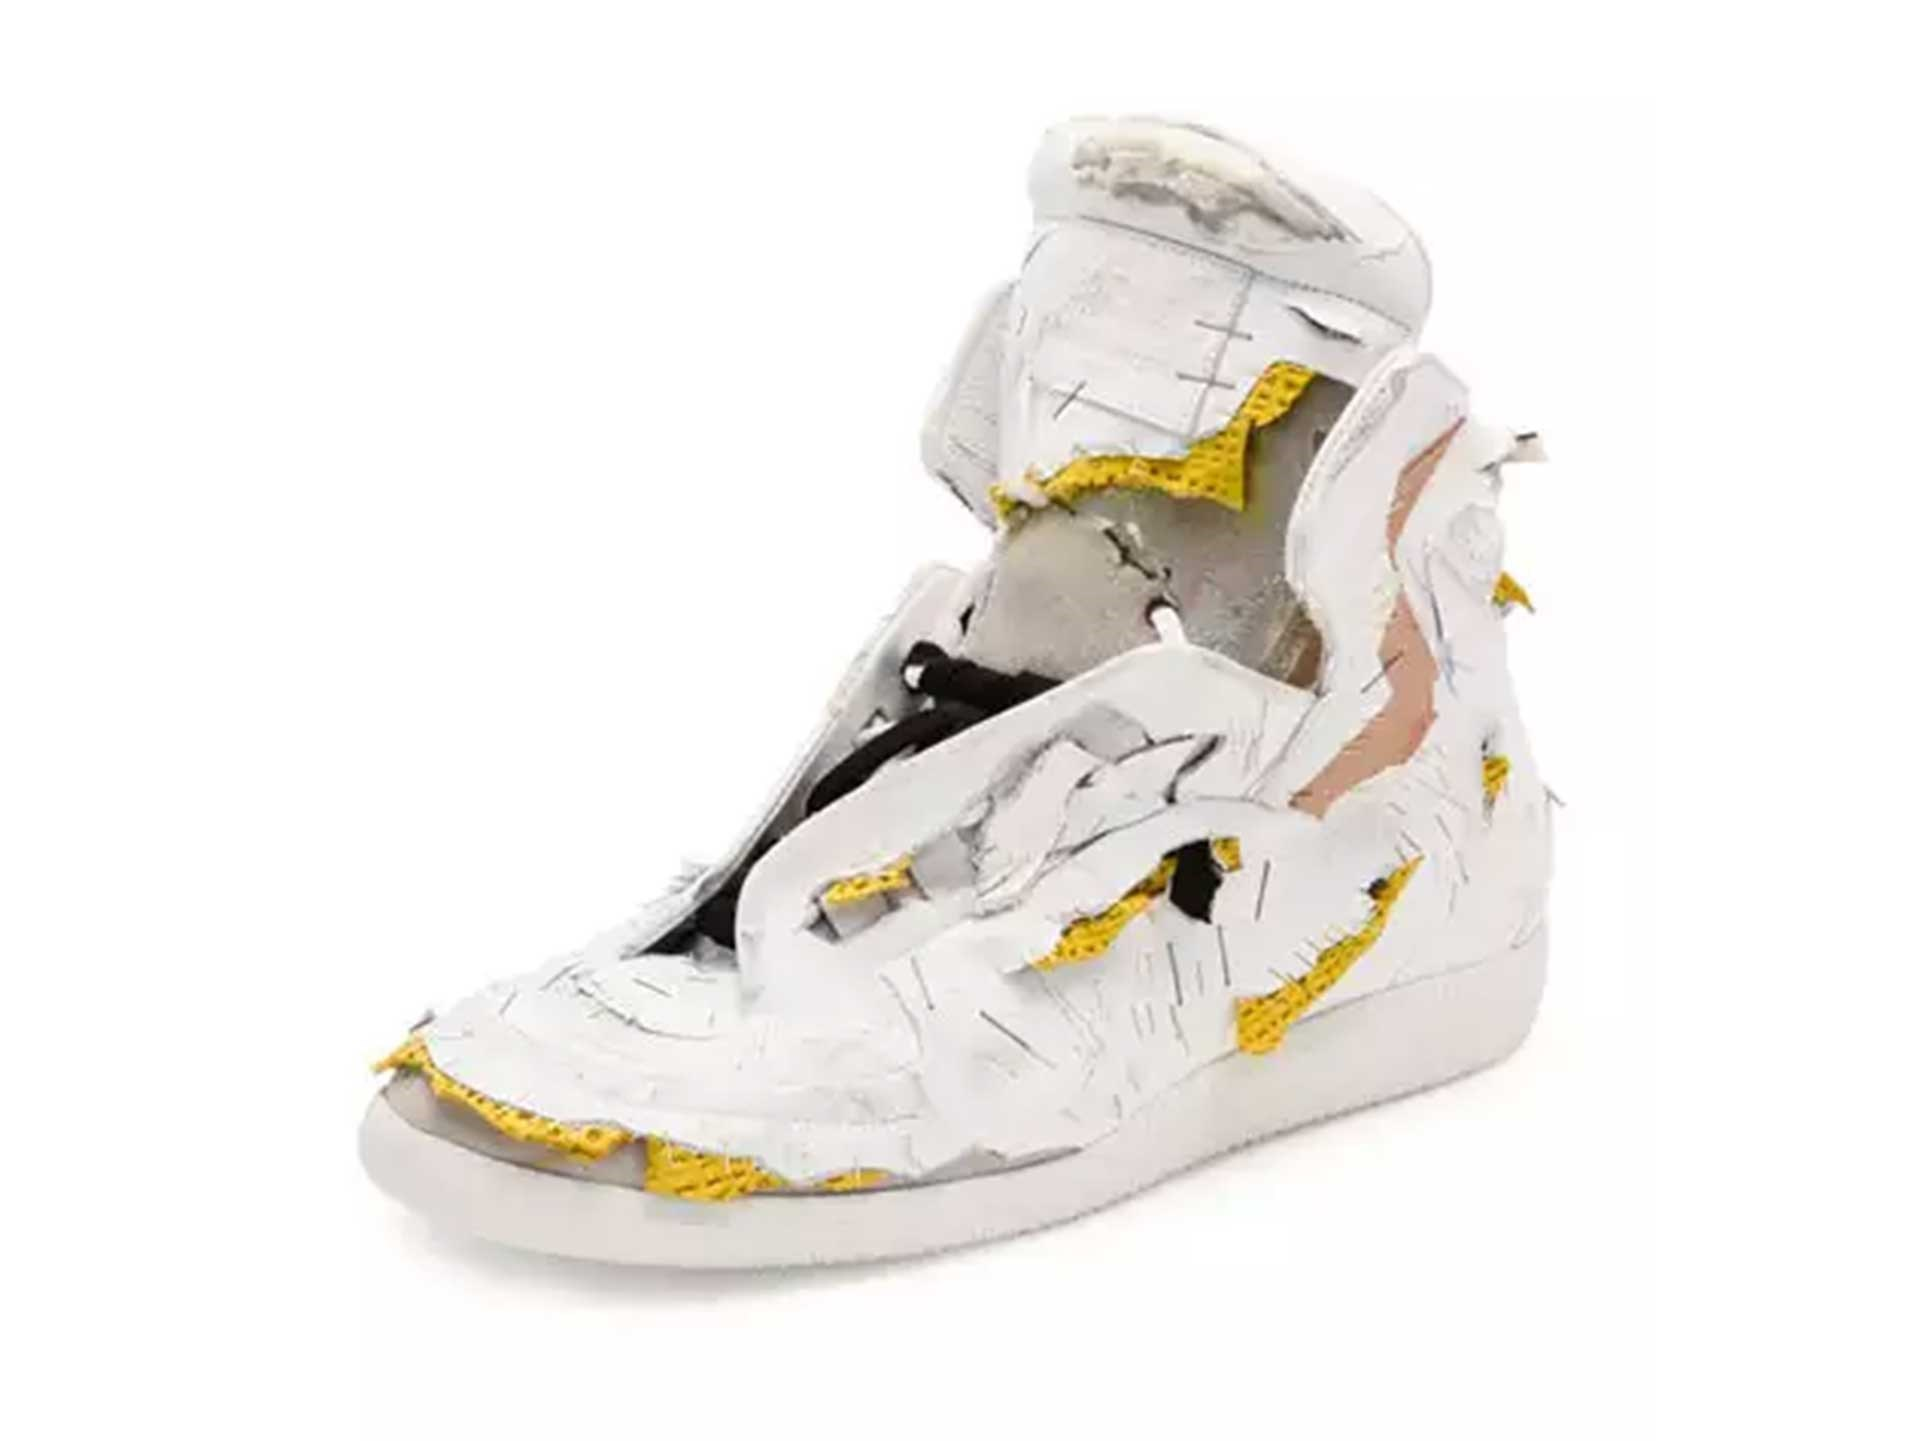 "Another day, another abso-fuckling-lutely RIDIC fashion piece makes its way onto the market. Behold: the [shredded sneaker](http://www.neimanmarcus.com/en-au/Maison-Margiela-Future-Destroyed-High-Top-Sneaker-White-Yellow/prod192370016/p.prod|target=""_blank""